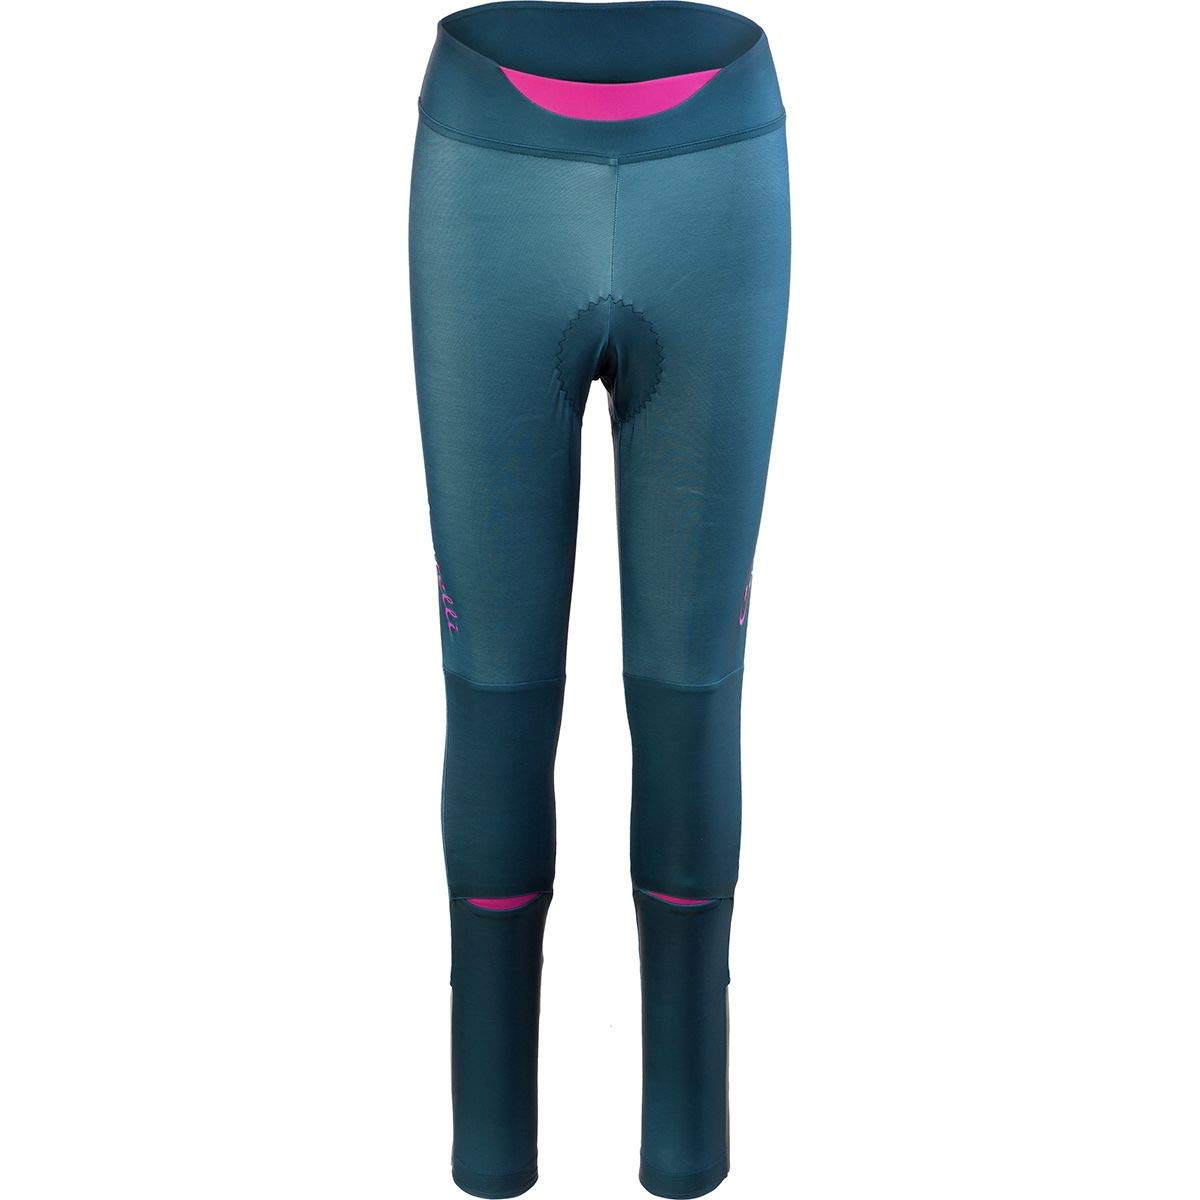 Castelli Chic Tight - Women's Dress Blue/Orchid, S